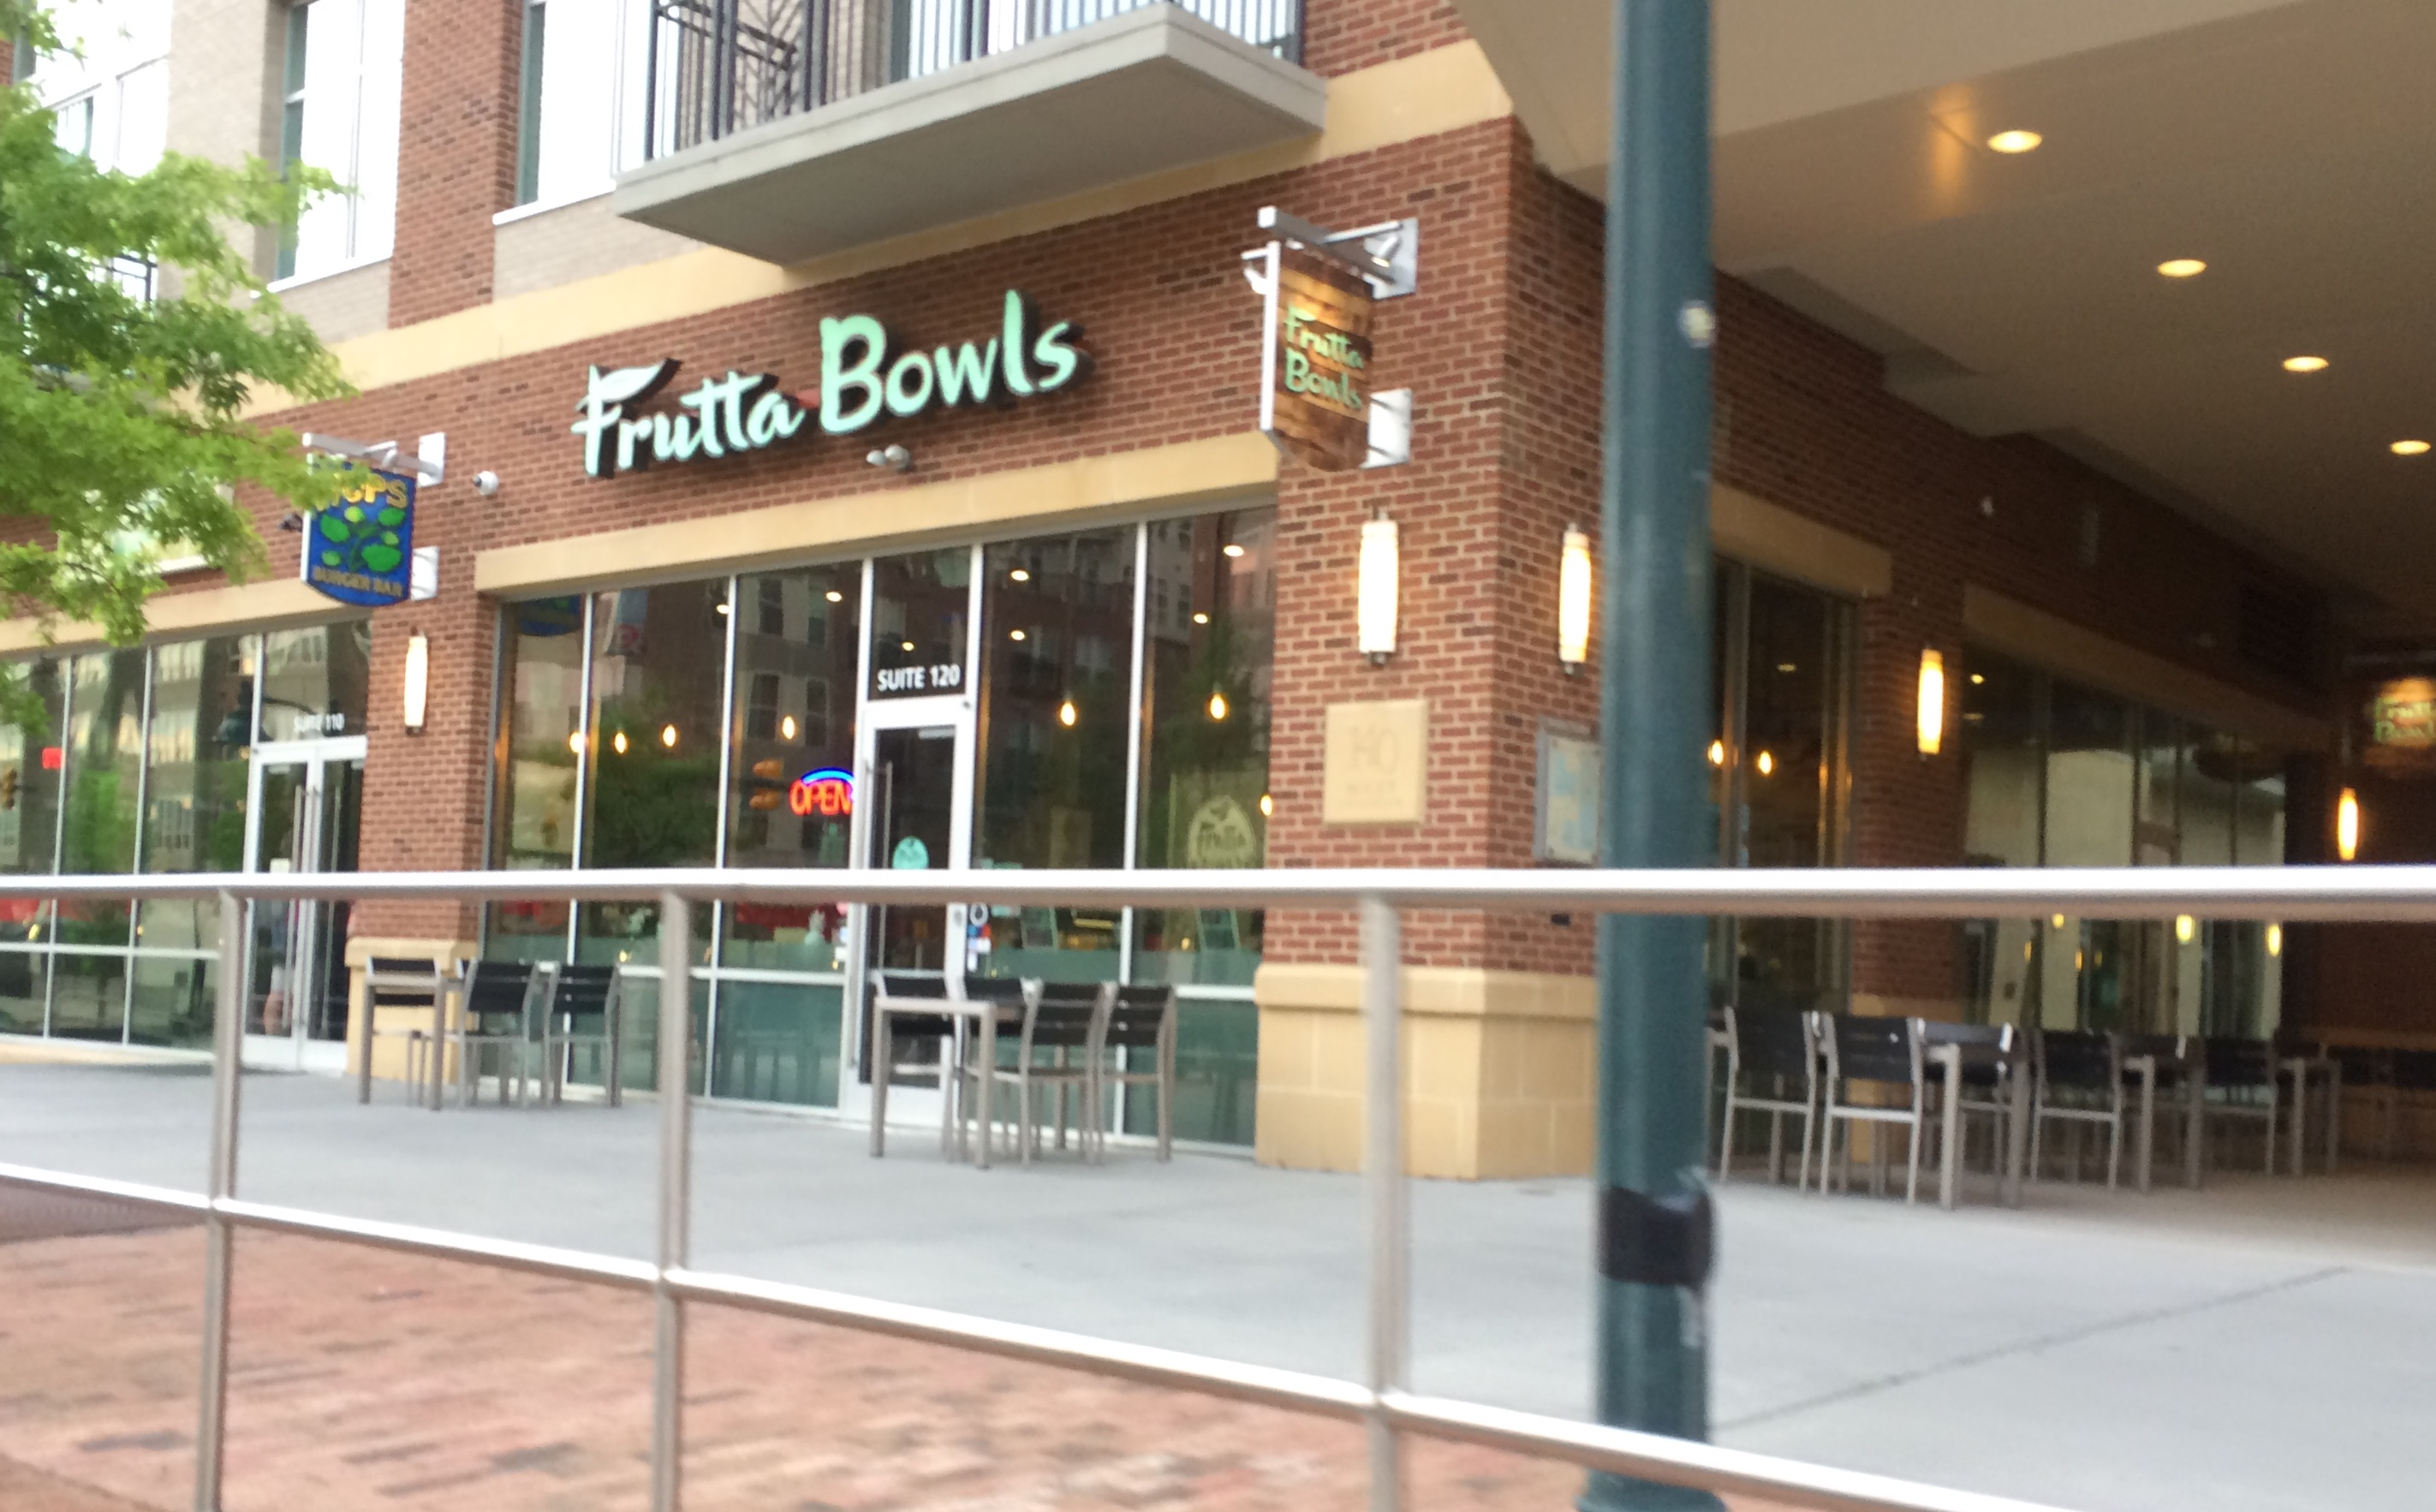 Frutta Bowls Opened In April Next To Hops Burger Bar Photo Credit Cidy Englund